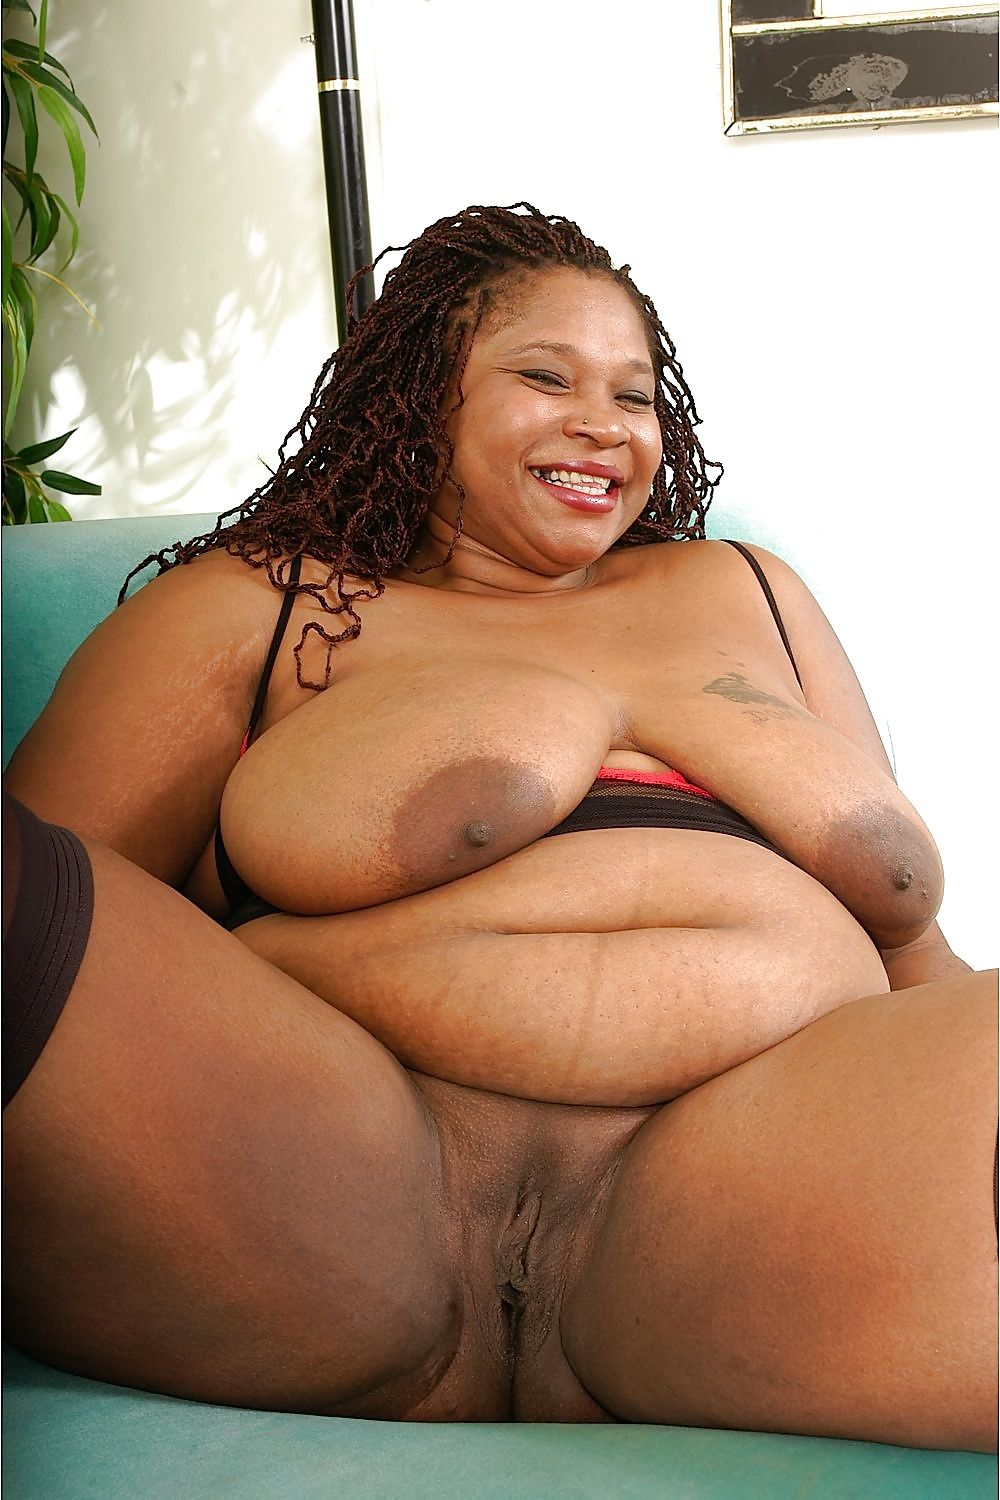 Big Black Women Sex Porn - Fat ebony women xxx movies free - New porn. Comments: 3